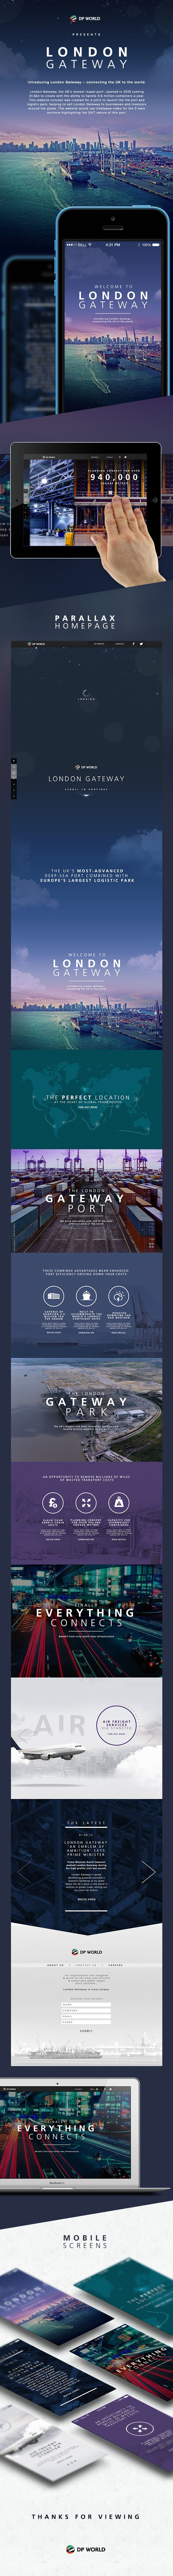 London Gateway by Andrew Paulson, via Behance